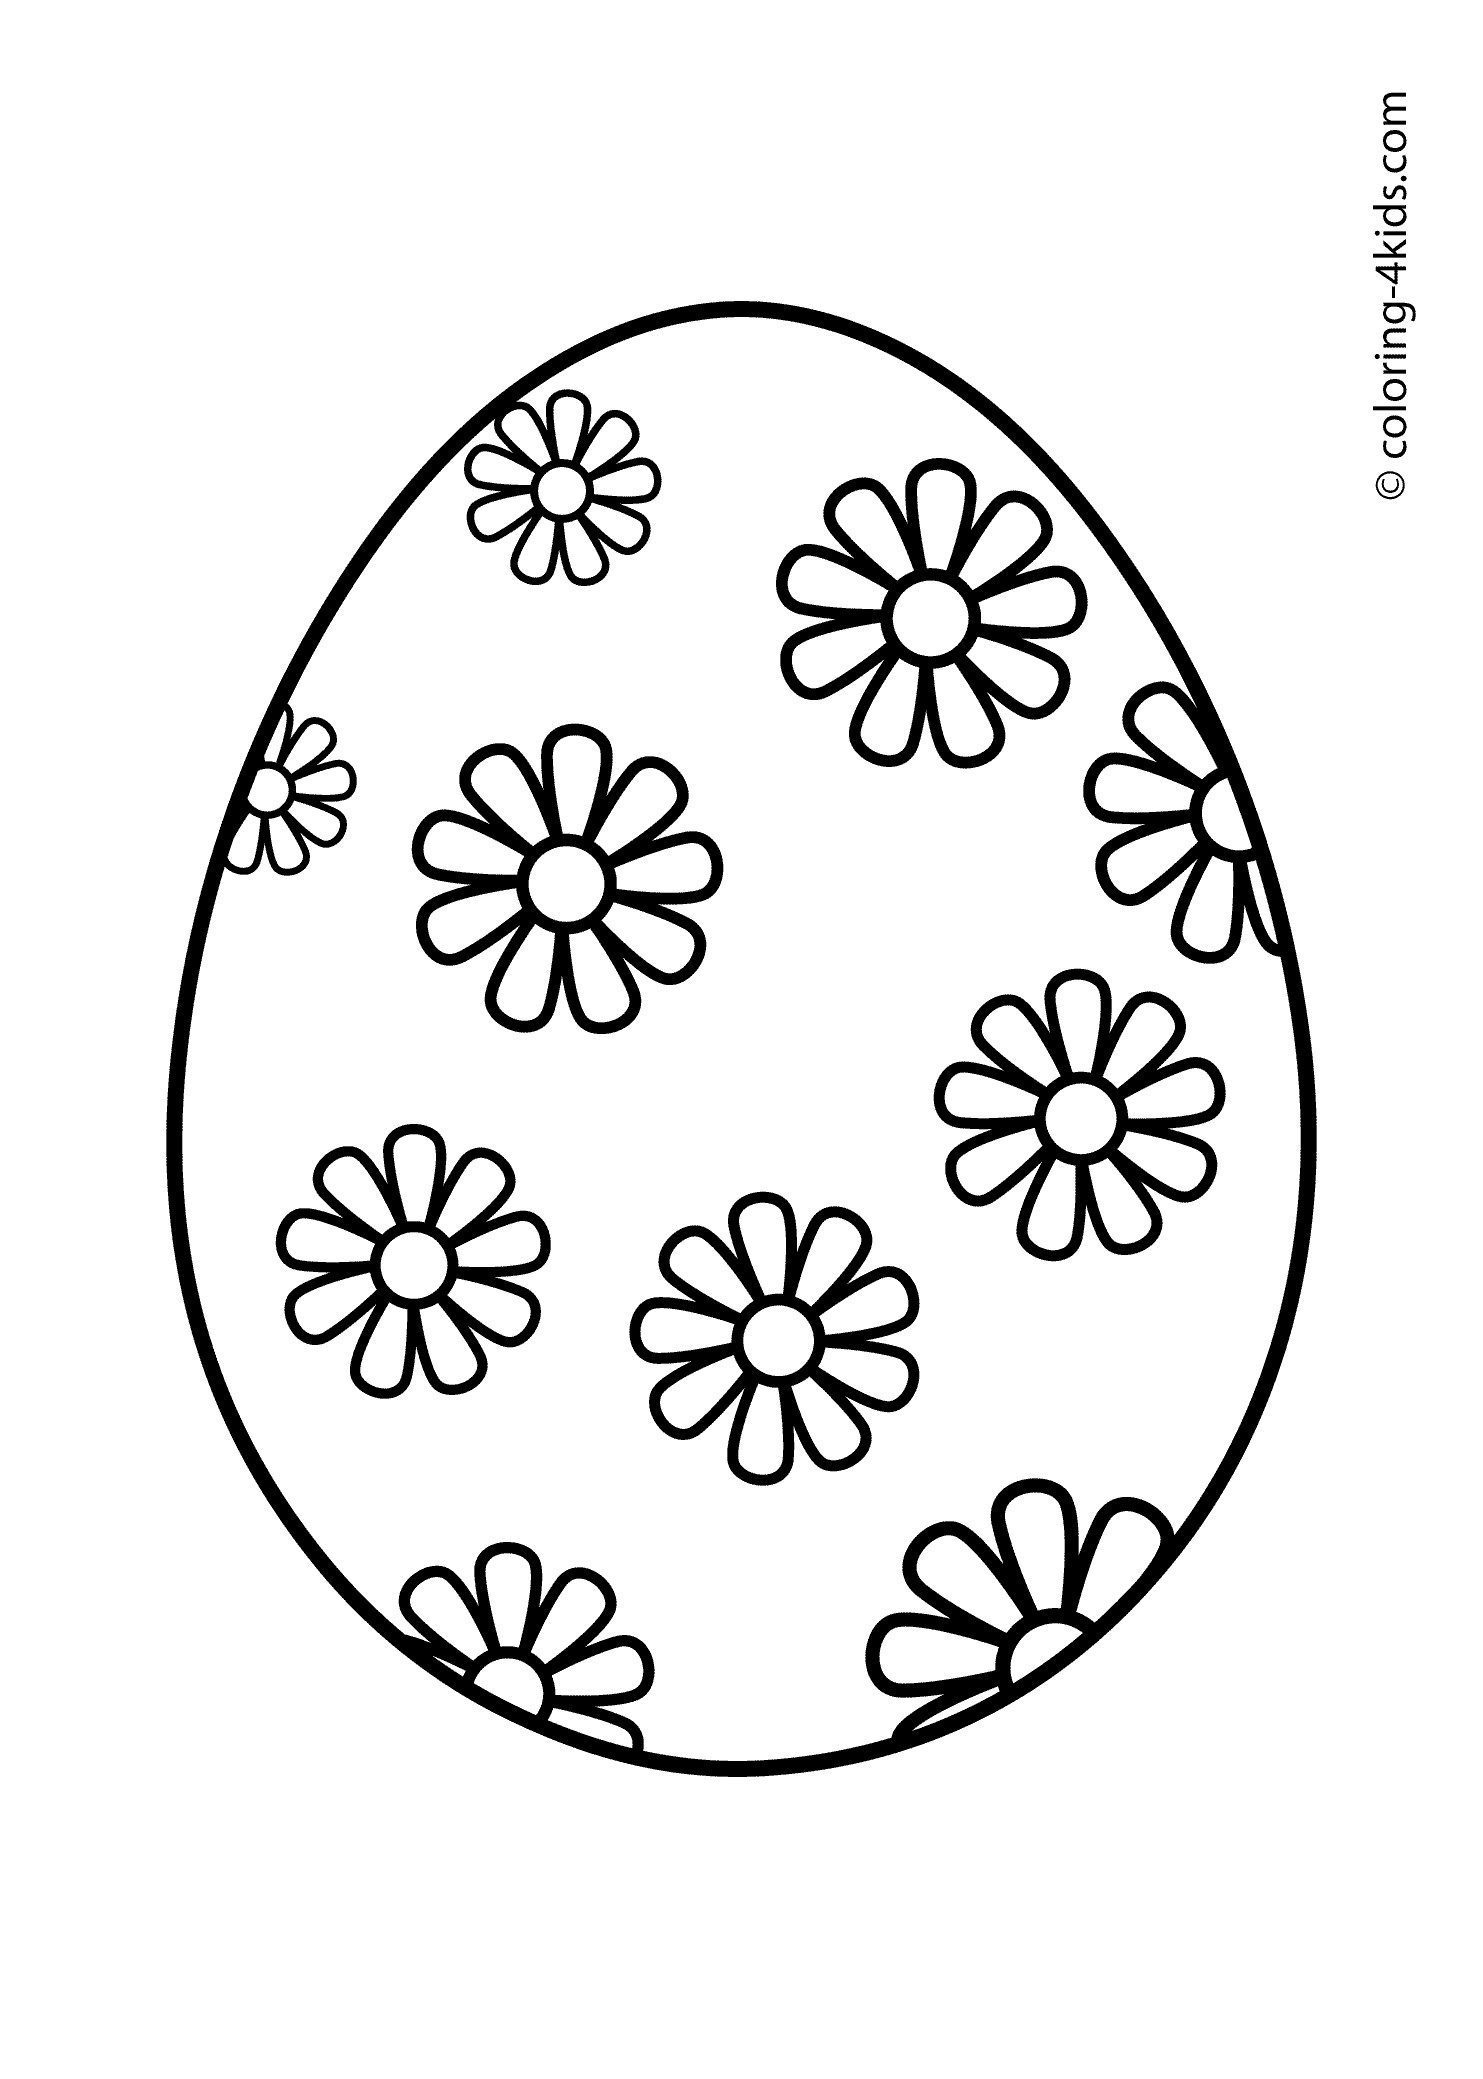 21 Excellent Picture Of Easter Egg Coloring Page Entitlementtraprhentitlementtrap: Butterfly Eggs Coloring Pages At Baymontmadison.com